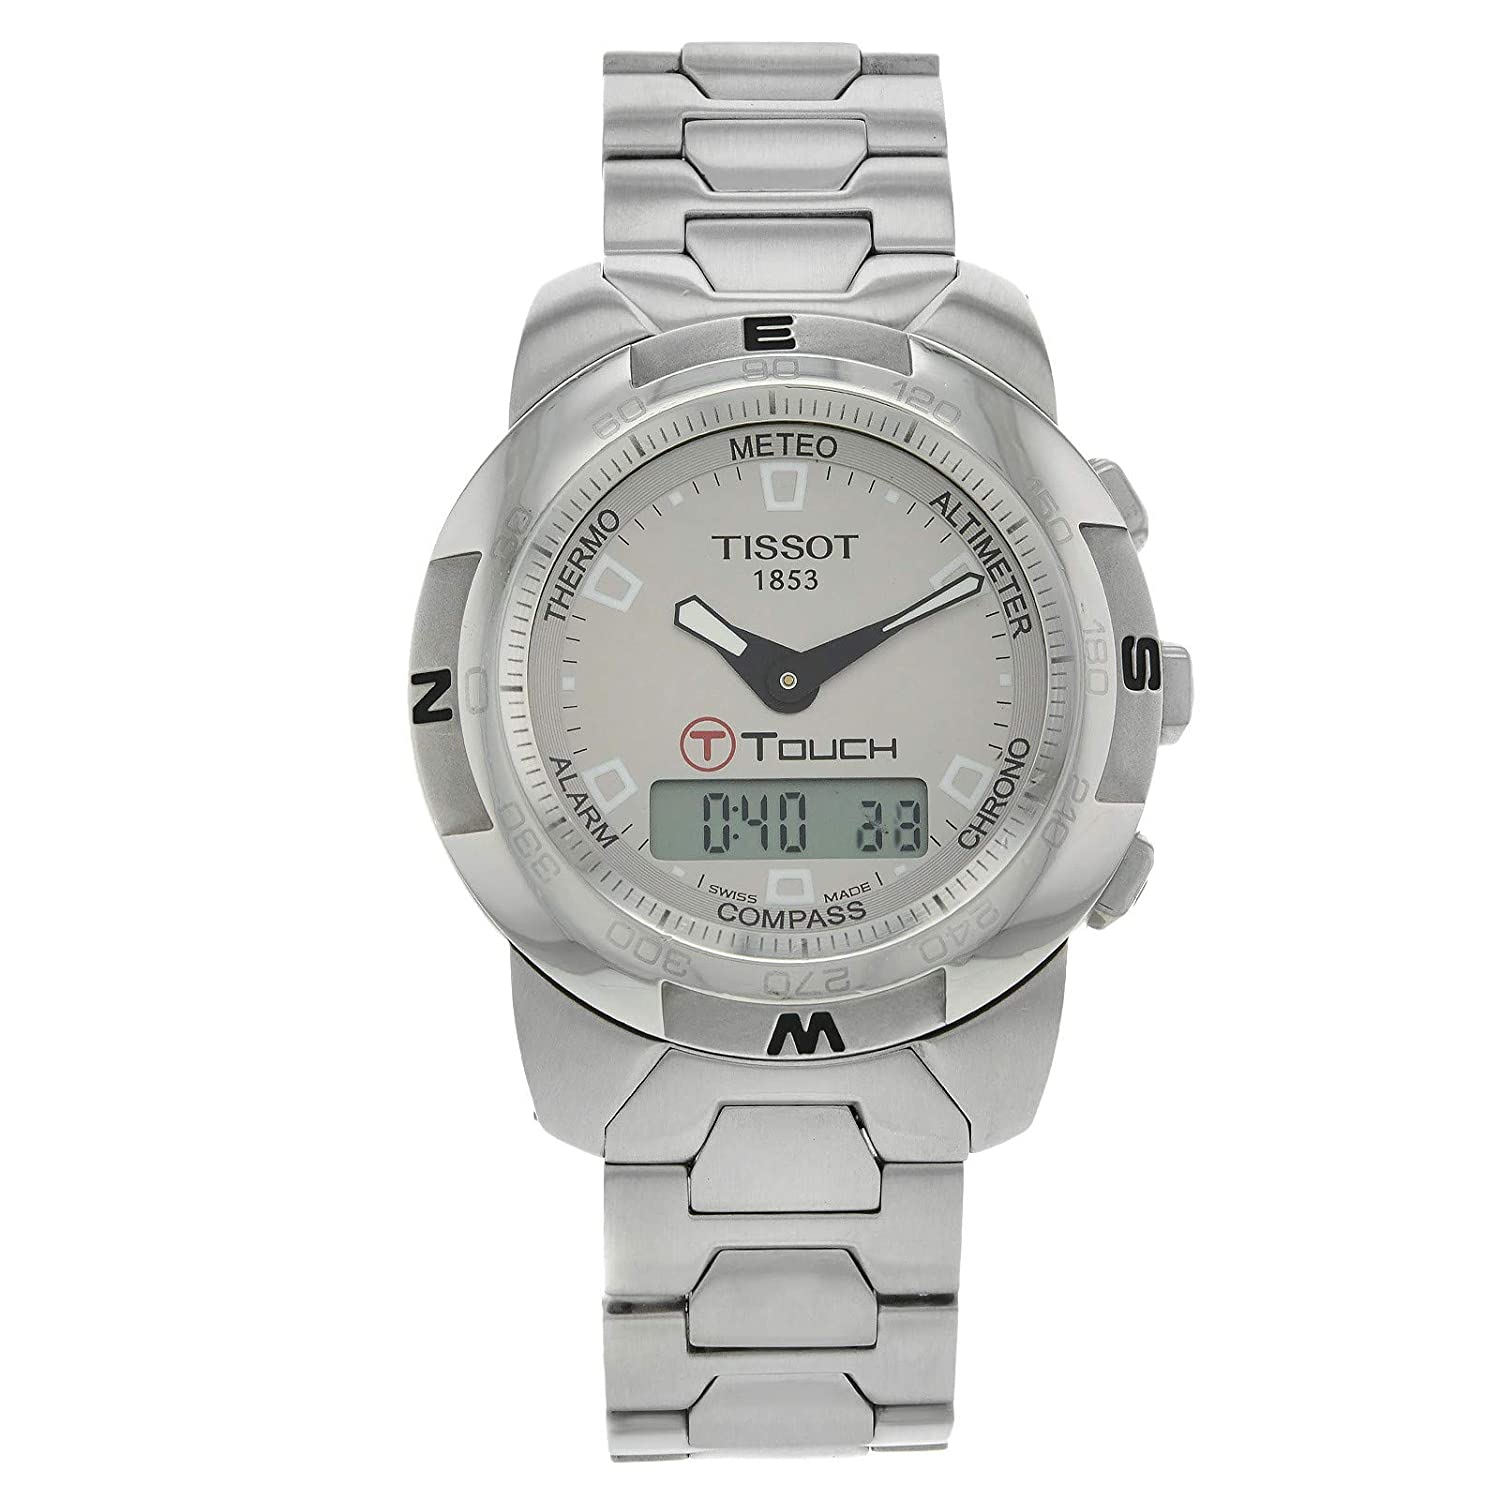 Amazon.com: Mathey-Tissot T-Touch Quartz Male Watch T33 ...